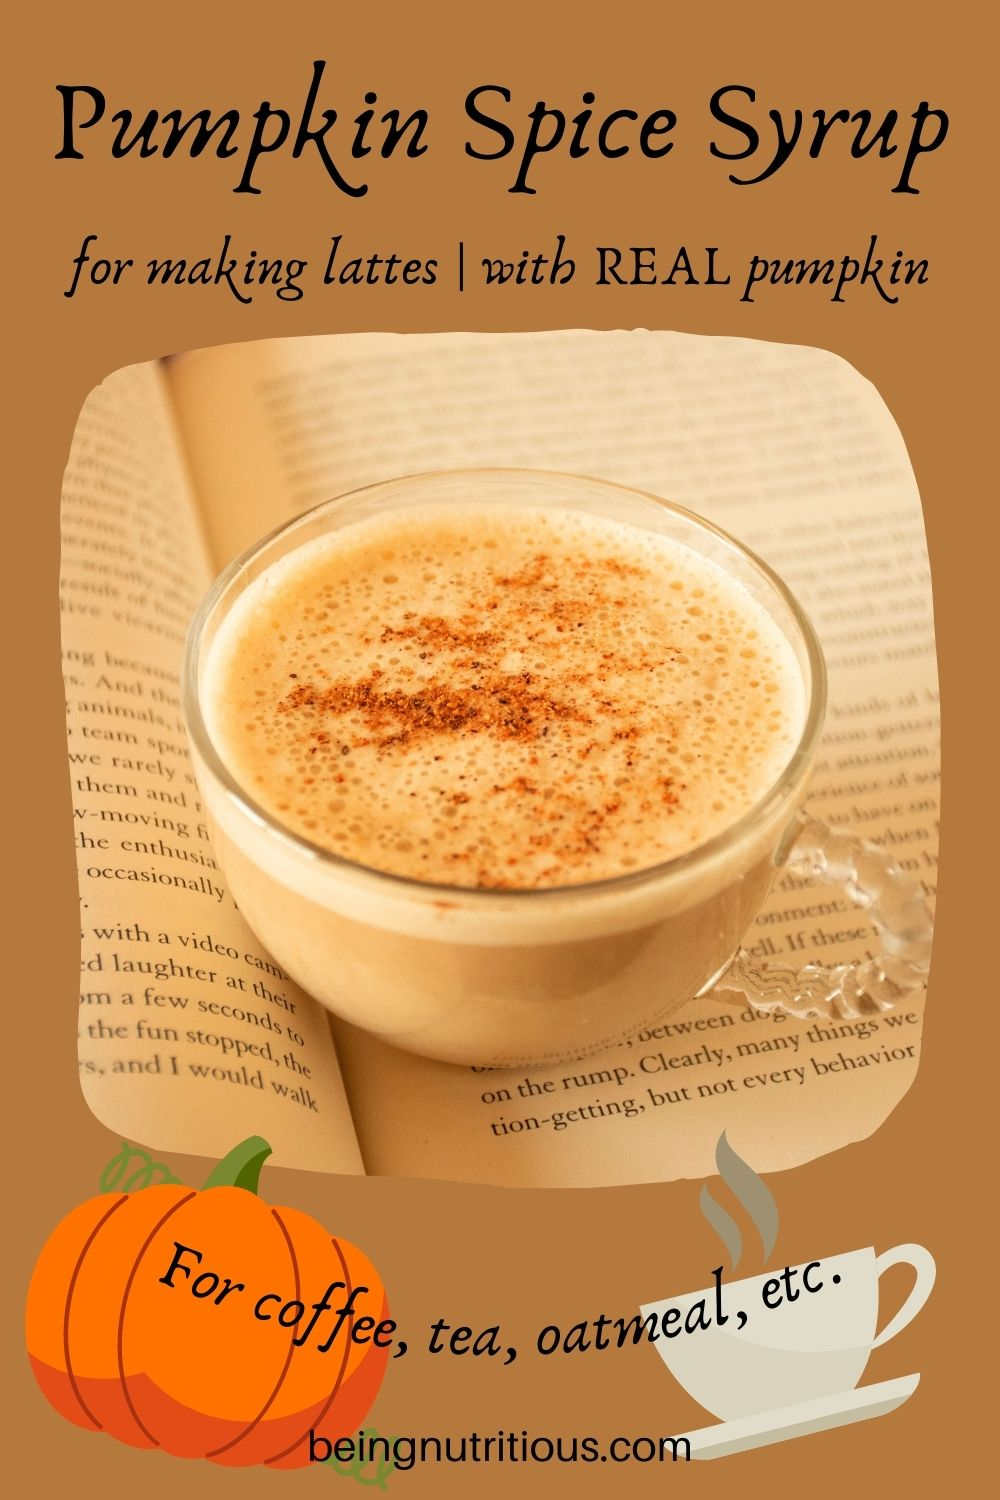 Small cup of a latte sitting on an open book. Text around picture: Pumpkin Spice Syrup for making lattes; with REAL pumpkin. For coffee, tea, oatmeal, etc.